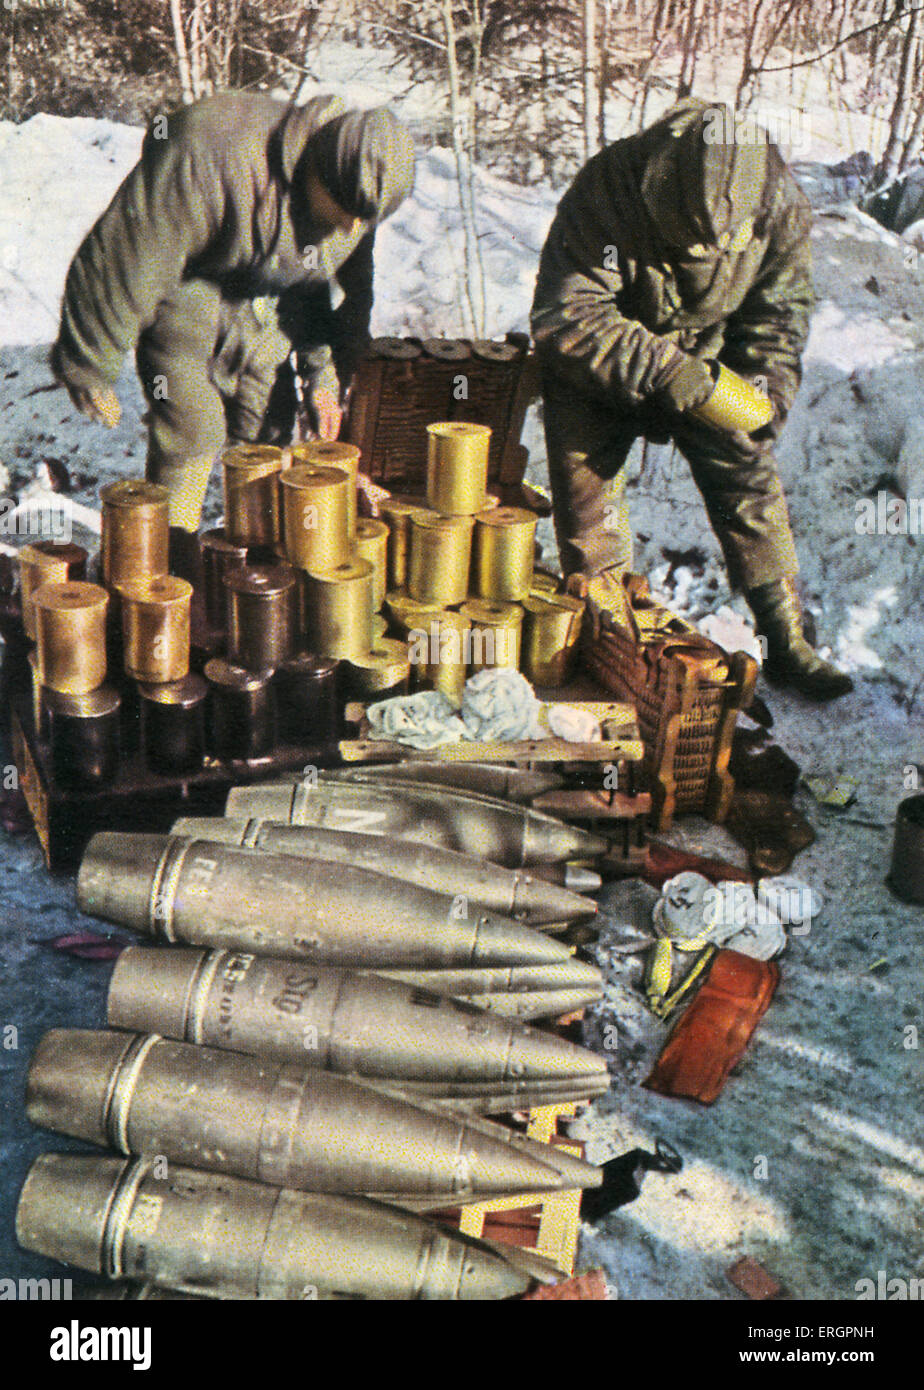 WW2 - Eastern Front, Winter. Two soldiers sort through a large collection of ammunition. - Stock Image